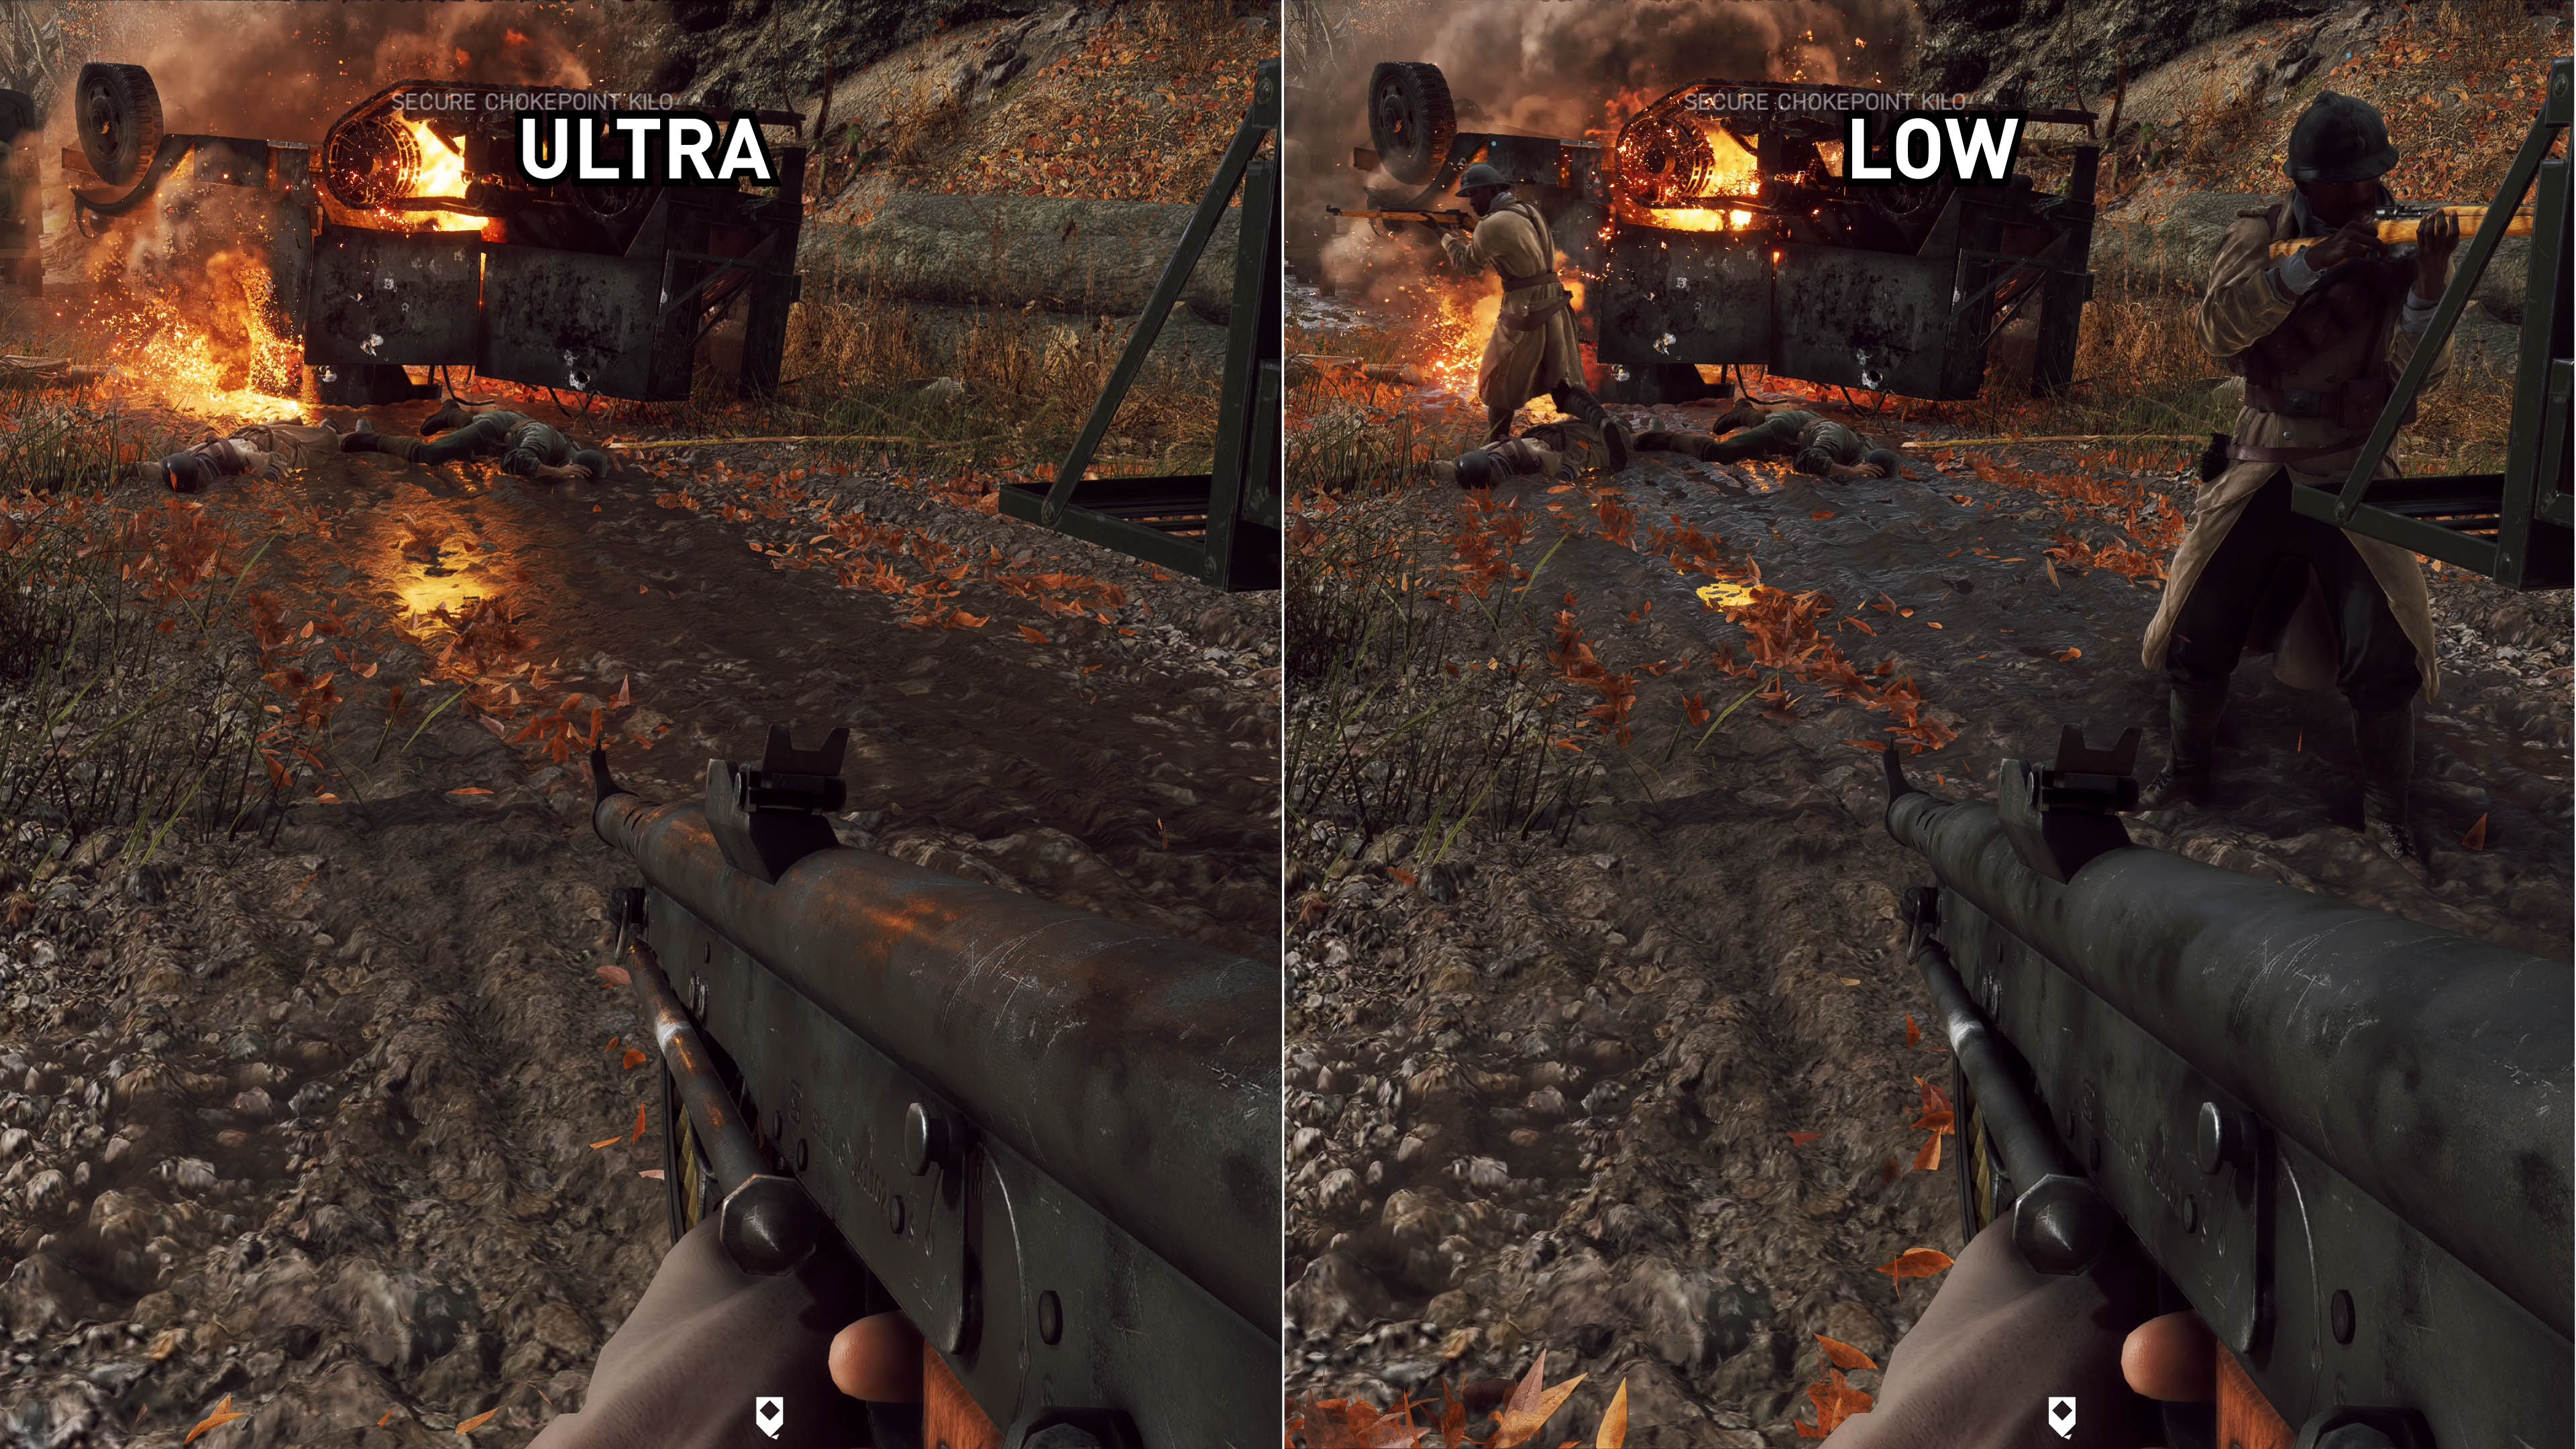 Battlefield V DXR Real-Time Ray Tracing Performance Tested